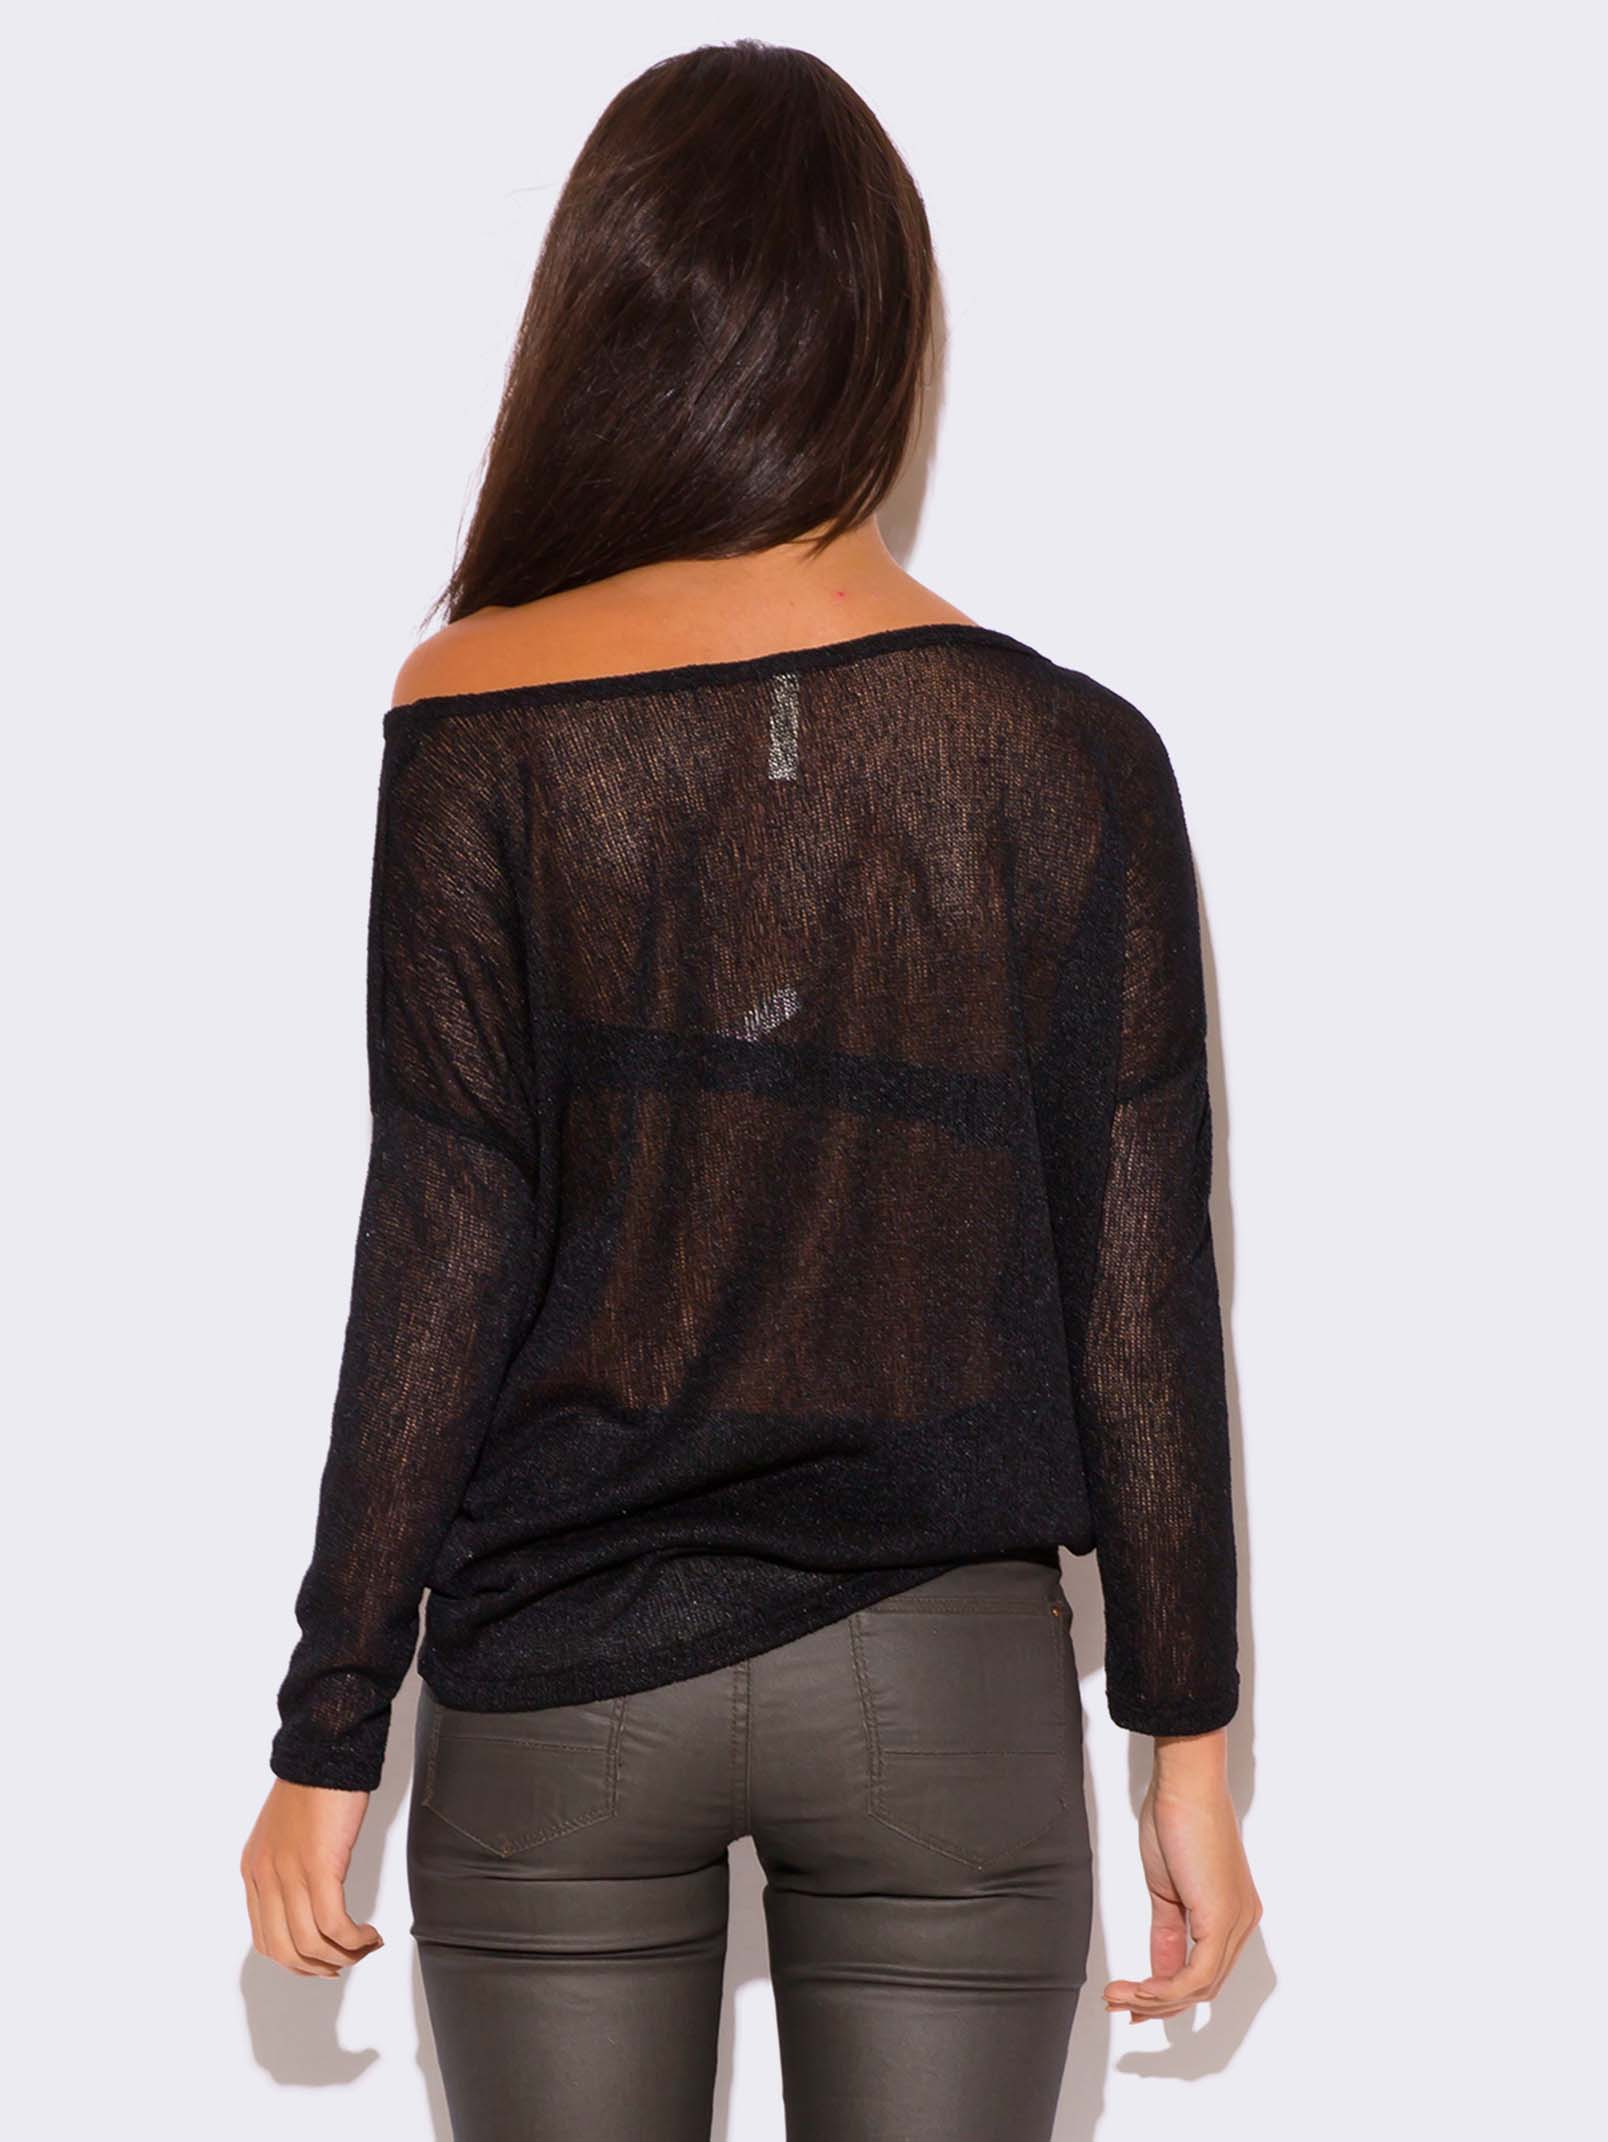 Find black top with sheer sleeve at ShopStyle. Shop the latest collection of black top with sheer sleeve from the most popular stores - all in one Vince Camuto Black Bell Sleeve Women's Tops Jean Paul Gaultier Soleil Semi-Sheer Long Sleeve Top $ $65 Get a Sale Alert $50 Off $+: JUST4U at Neiman Marcus Neiman Marcus Anatomie.